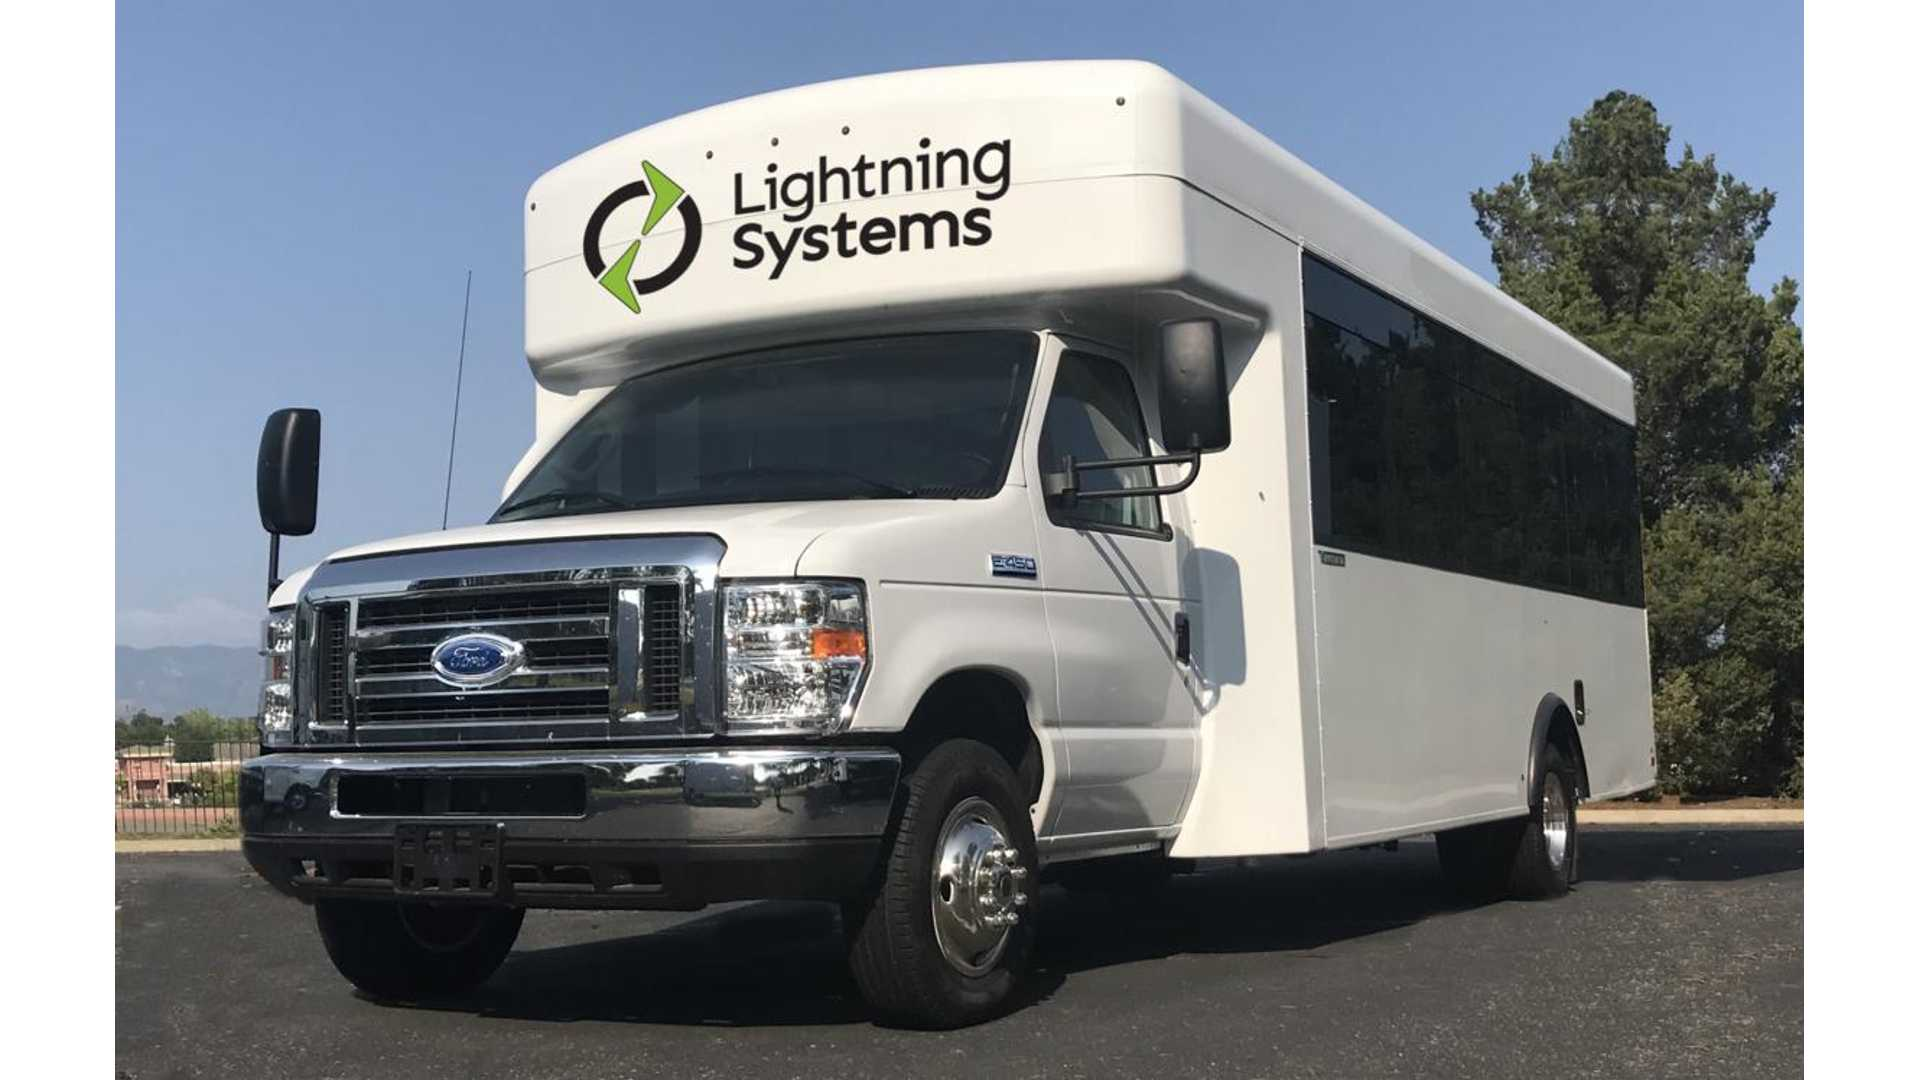 Ford E-450 Electric Shuttle Bus Becomes Real Thanks To Lightning